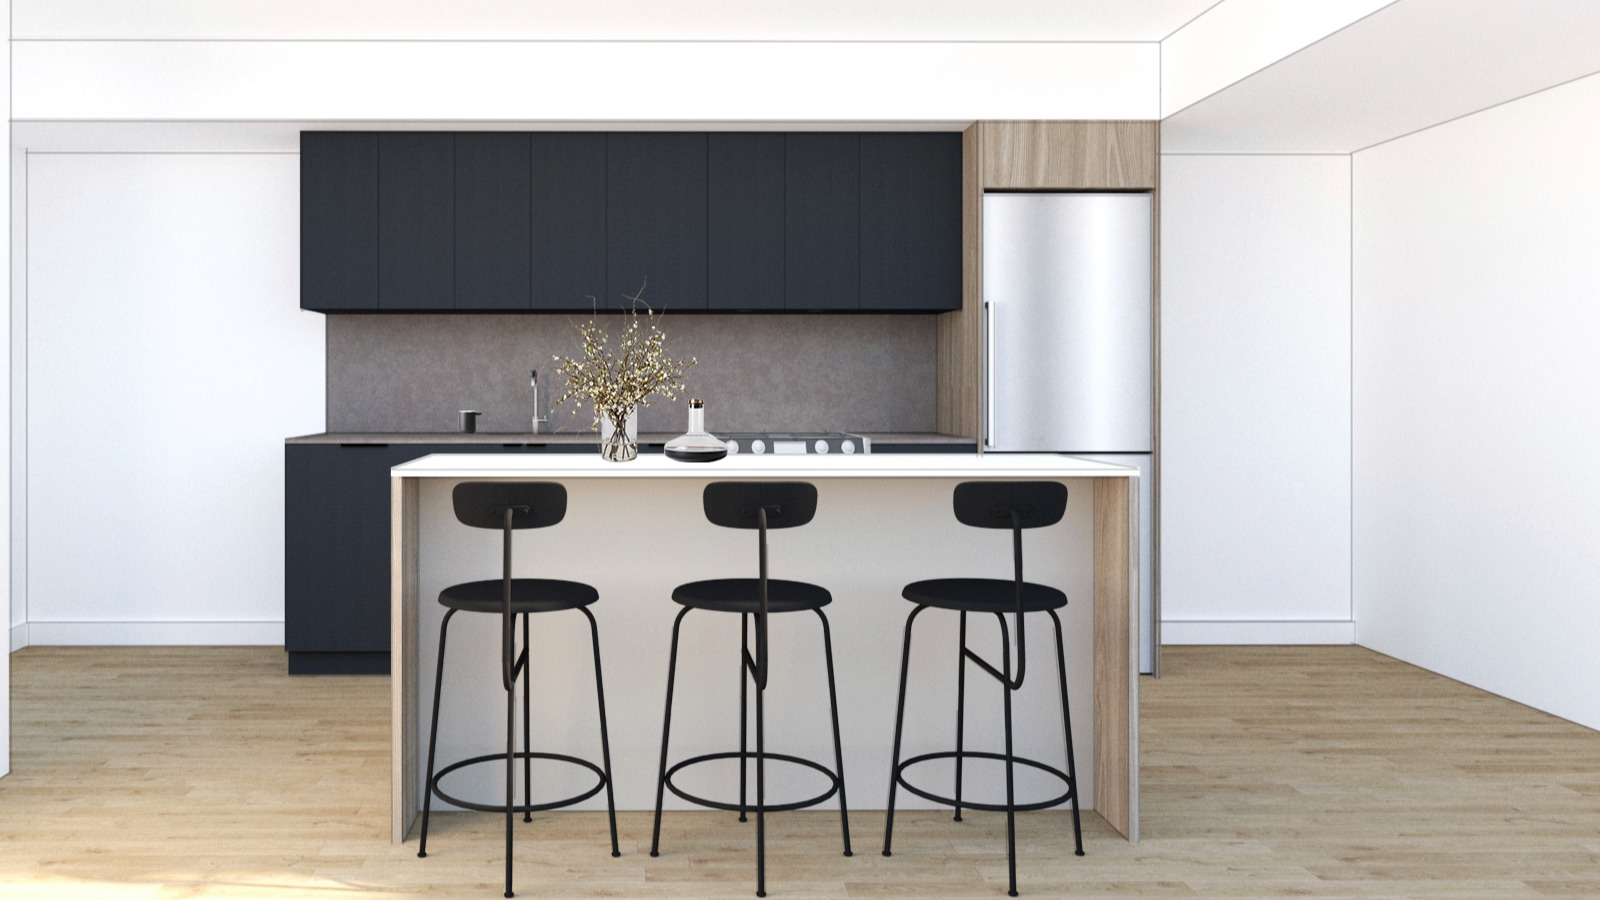 Rendering of kitchen with island and built in appliances